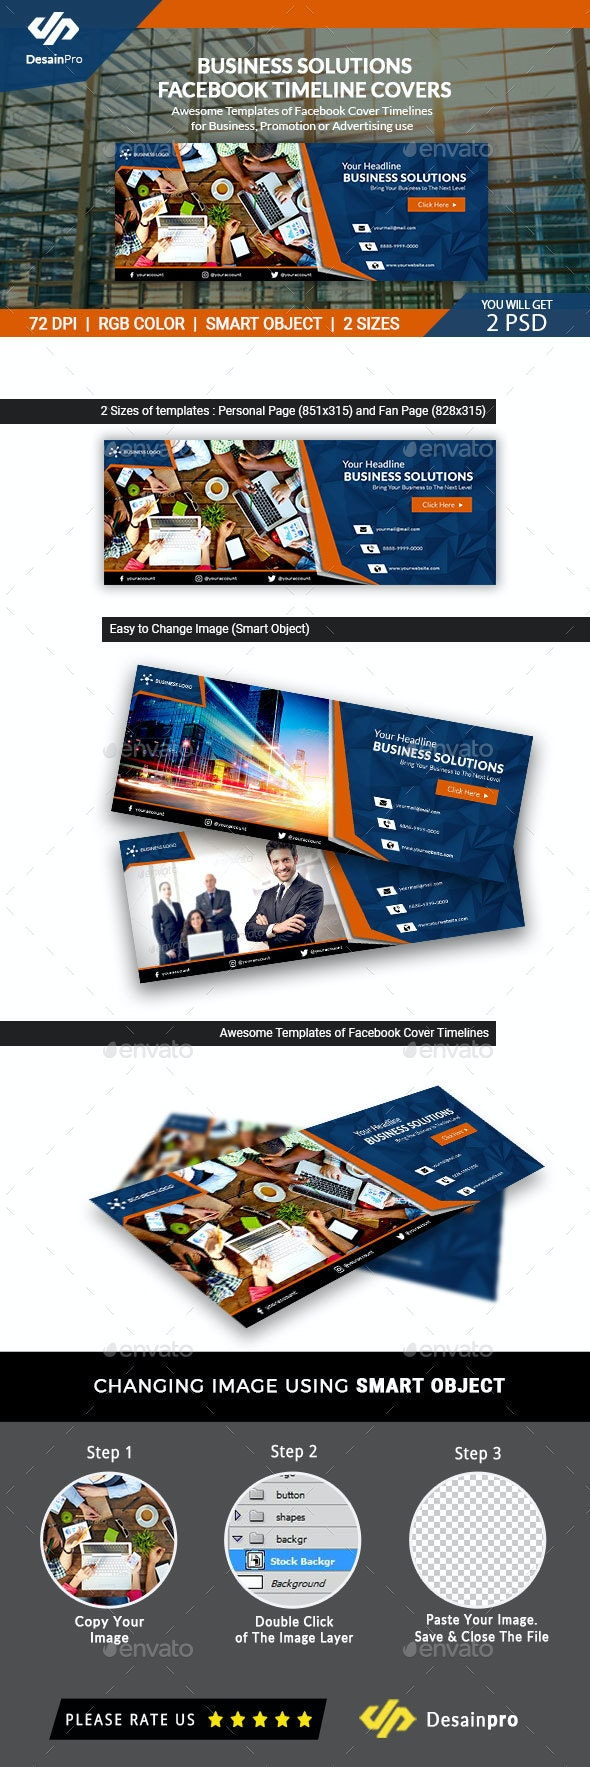 Business Solutions Facebook Timeline Covers - AR - Facebook Timeline Covers Social Media